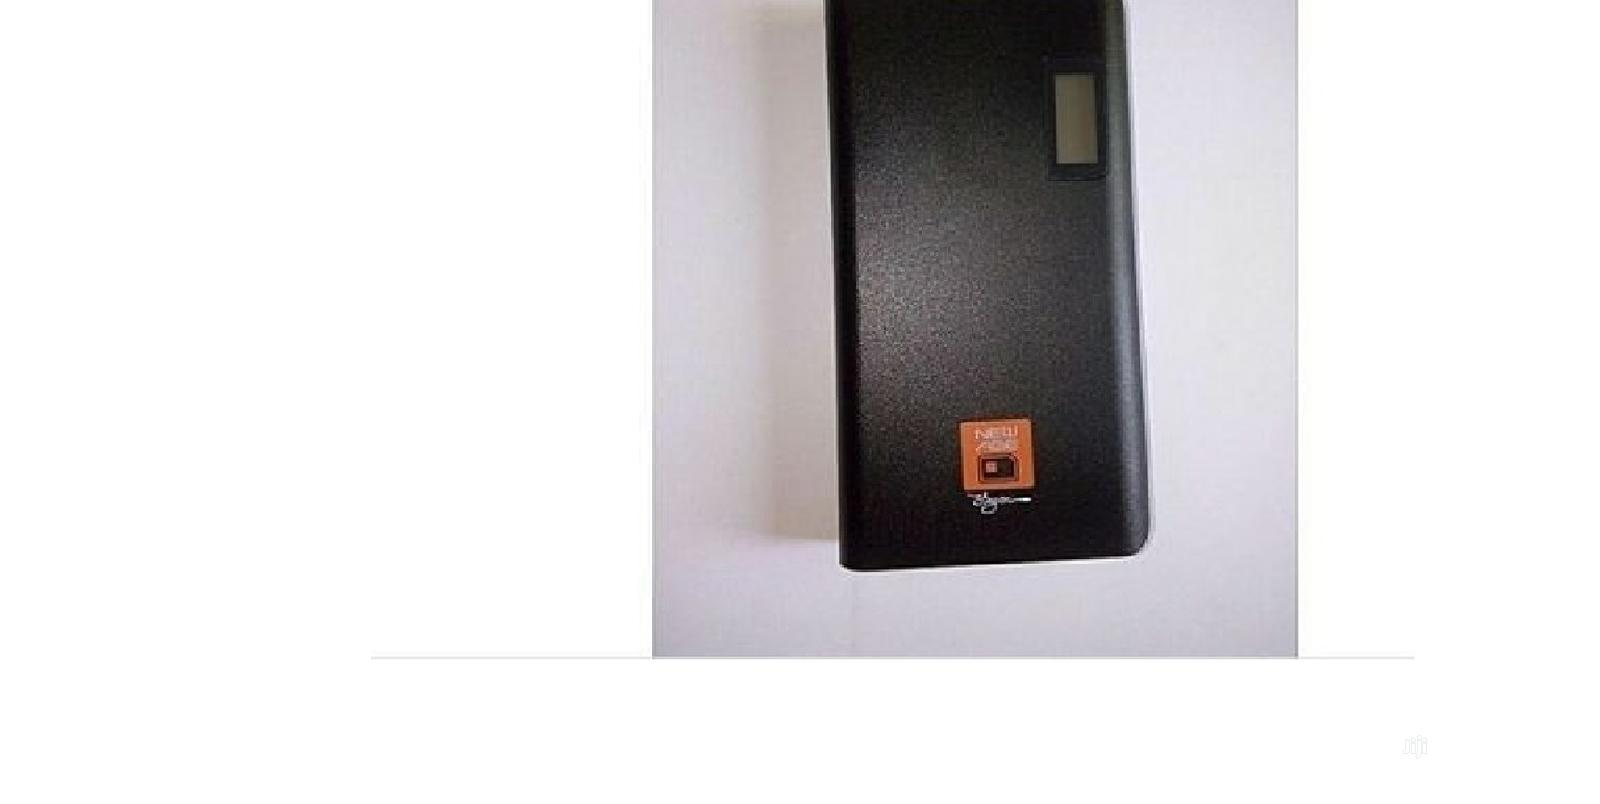 New Age Powerbank 22500mah | Accessories for Mobile Phones & Tablets for sale in Ikeja, Lagos State, Nigeria